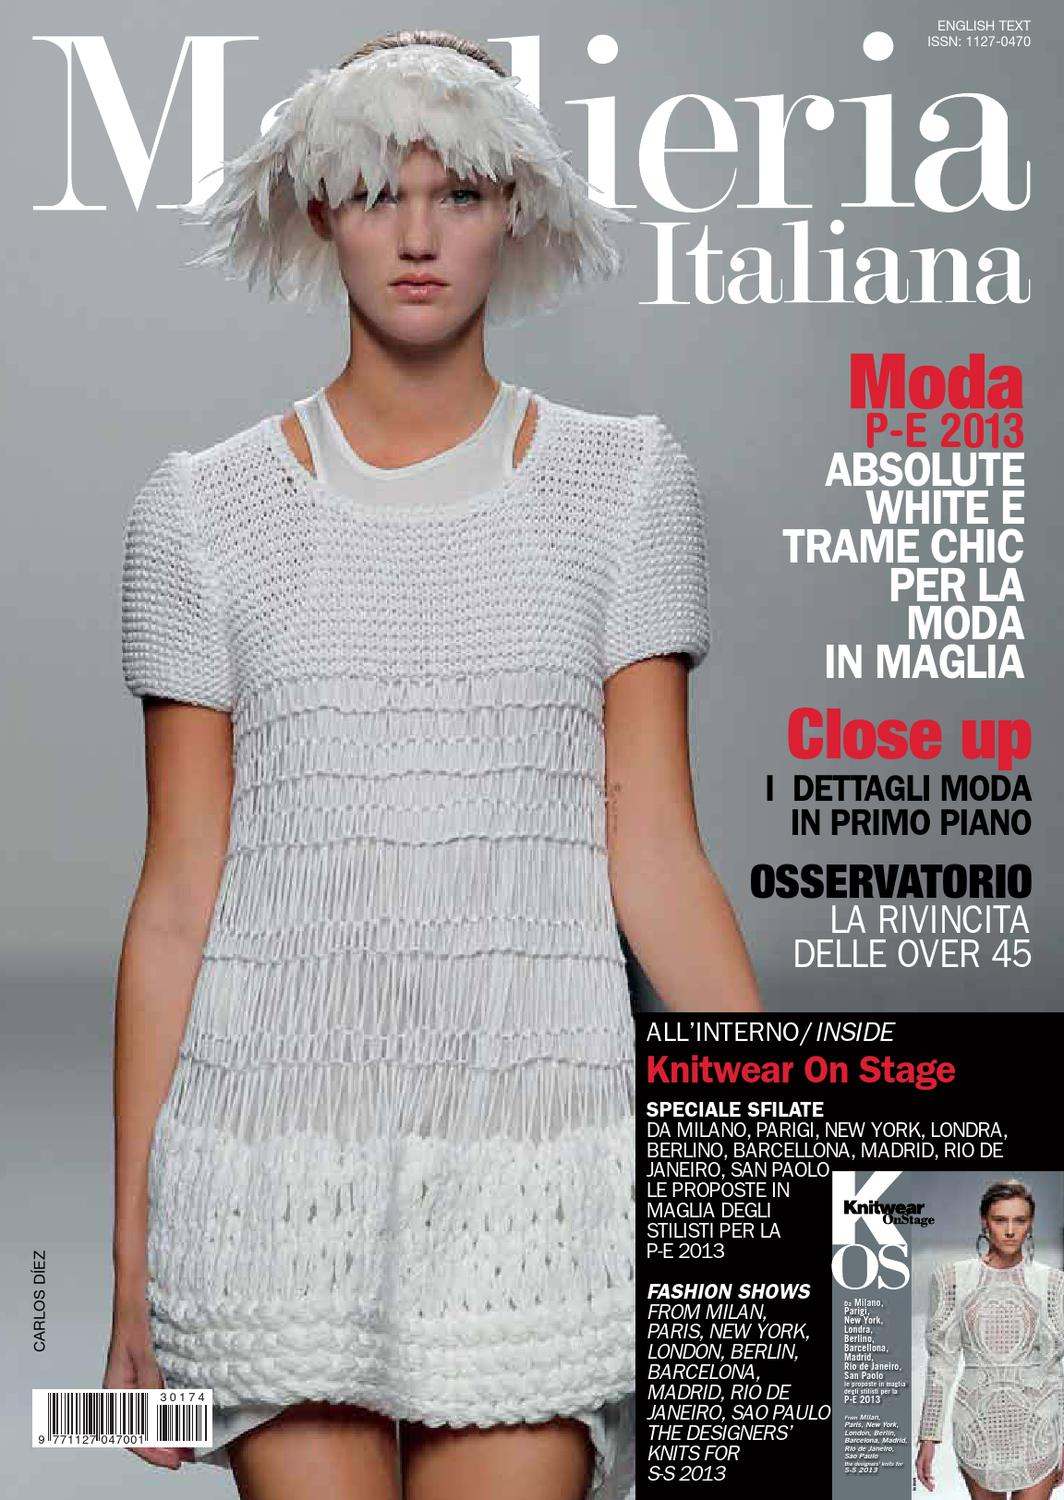 Maglieria Italiana - 174 by Editoriale Moda - issuu a895818a702